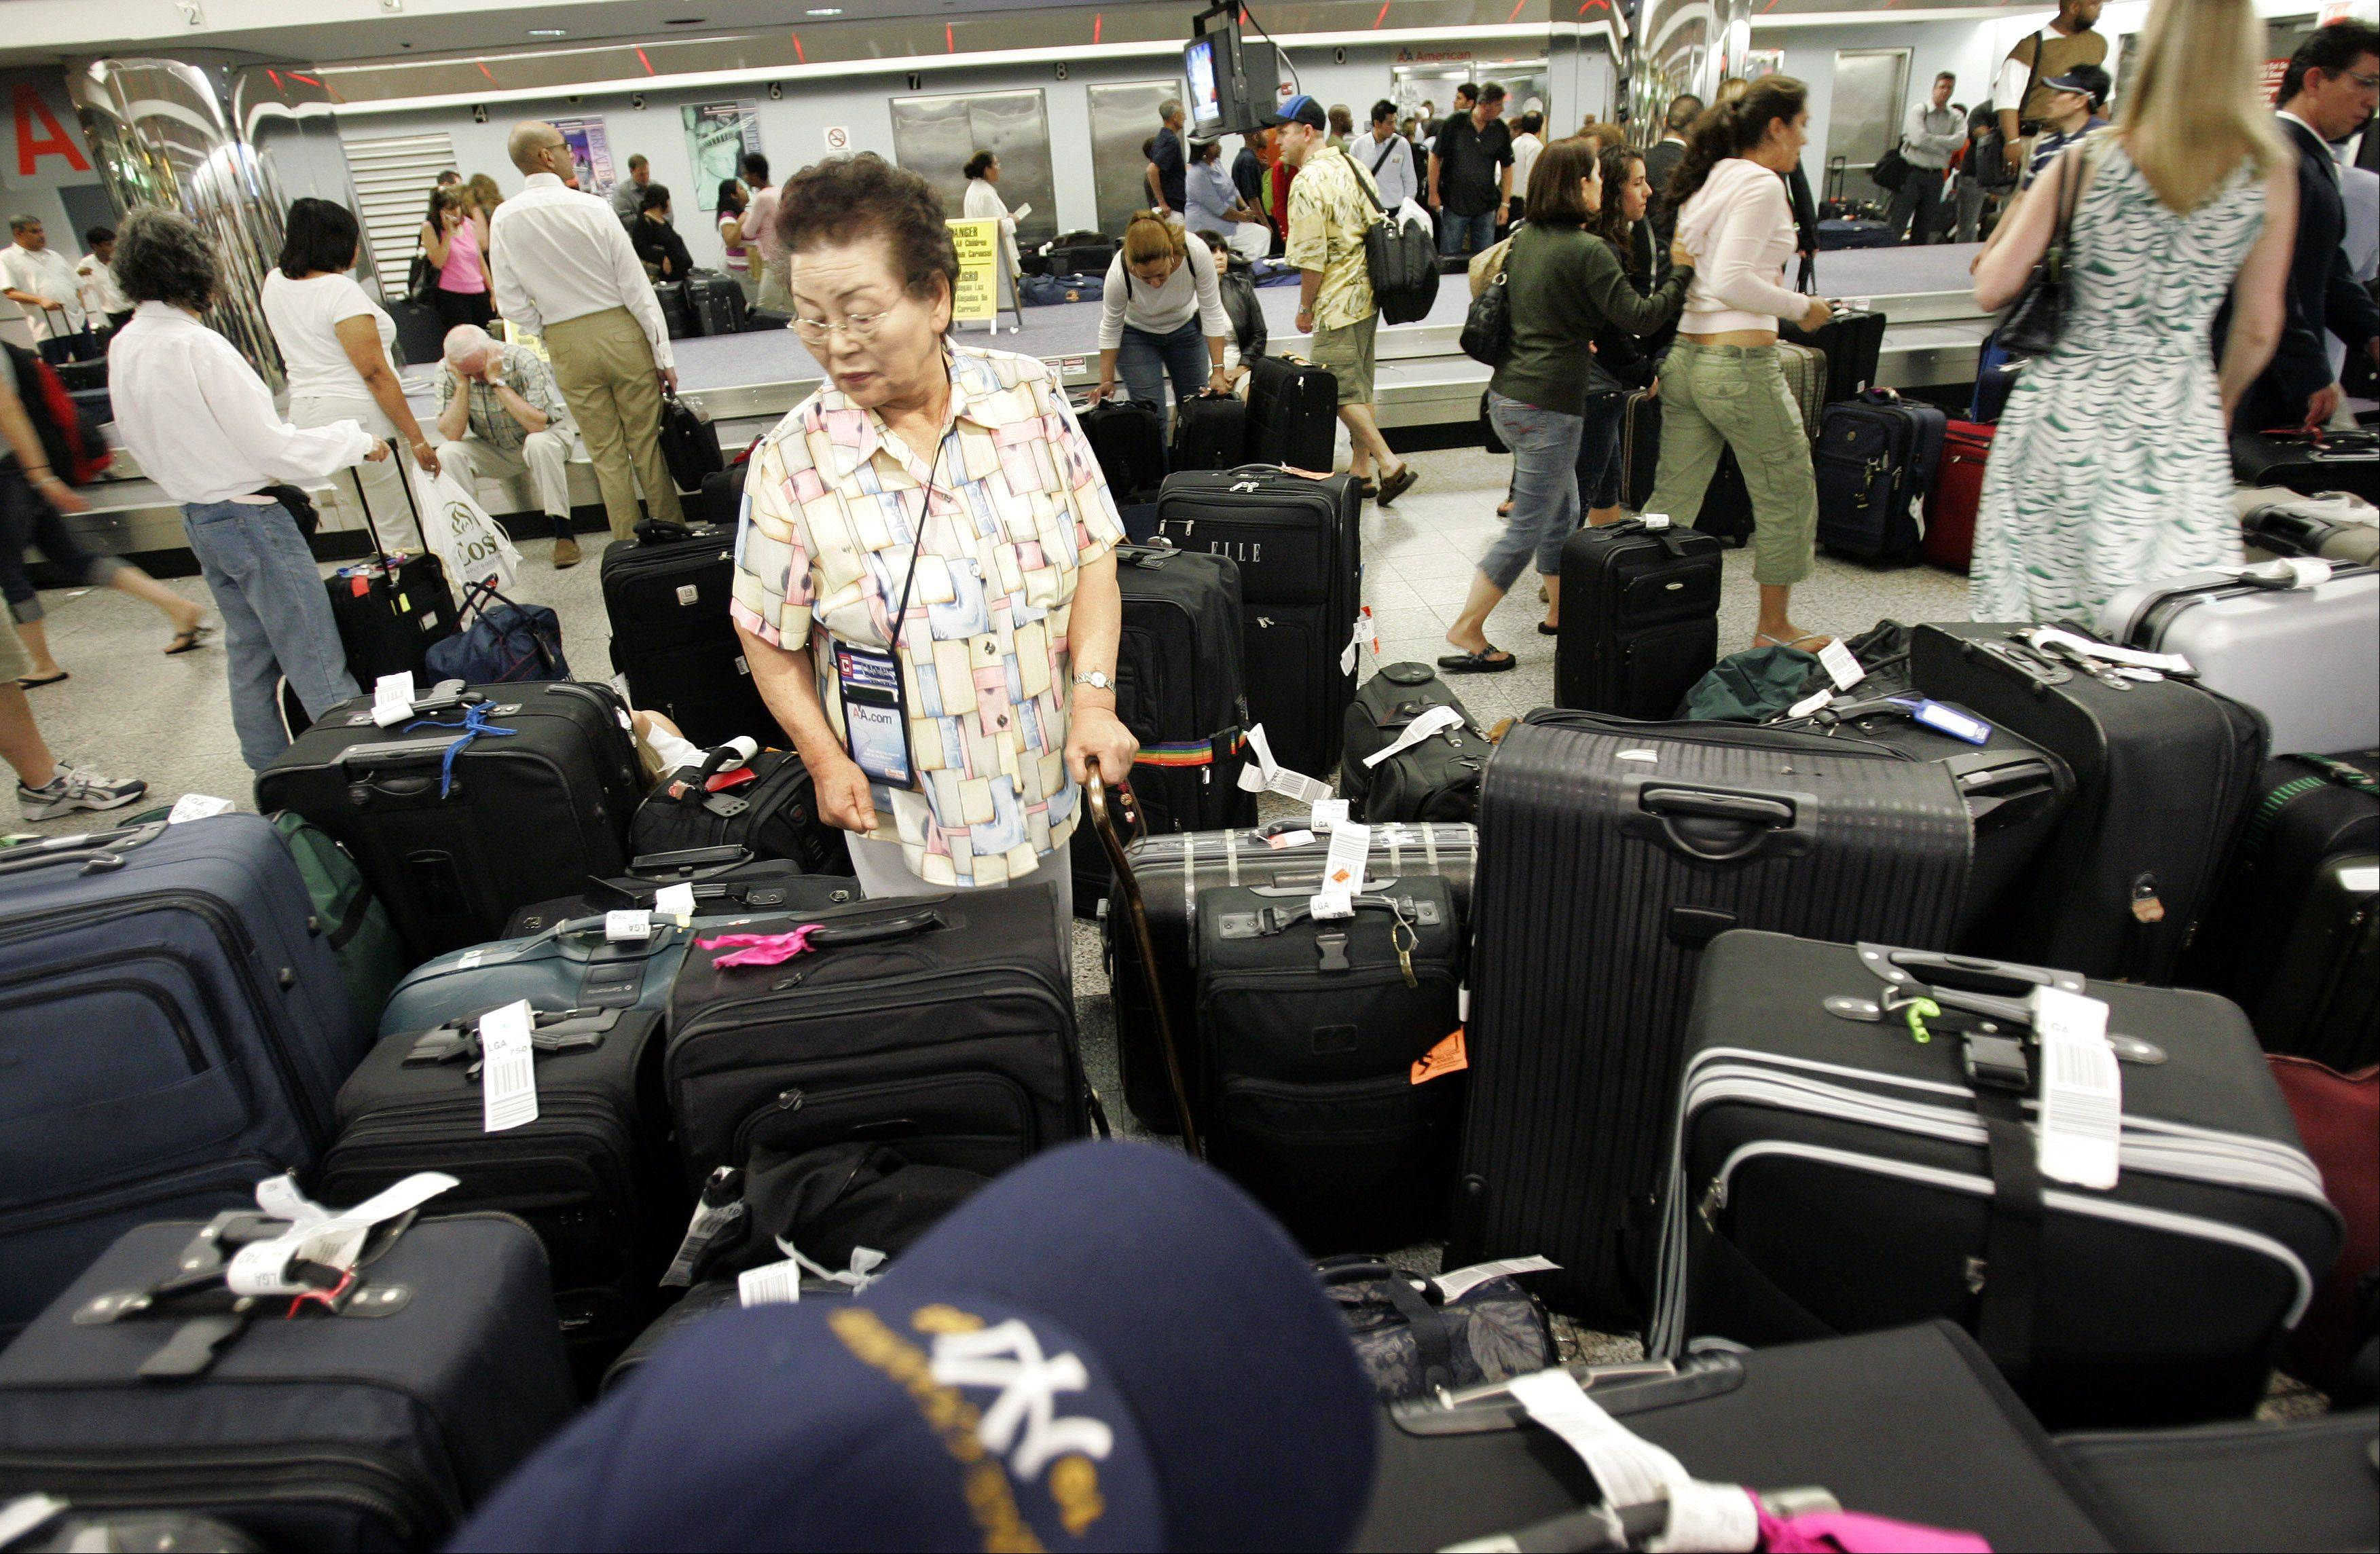 U.S. airlines collected $924 million in baggage fees in the third quarter, almost 3 percent more than in the same period last year.